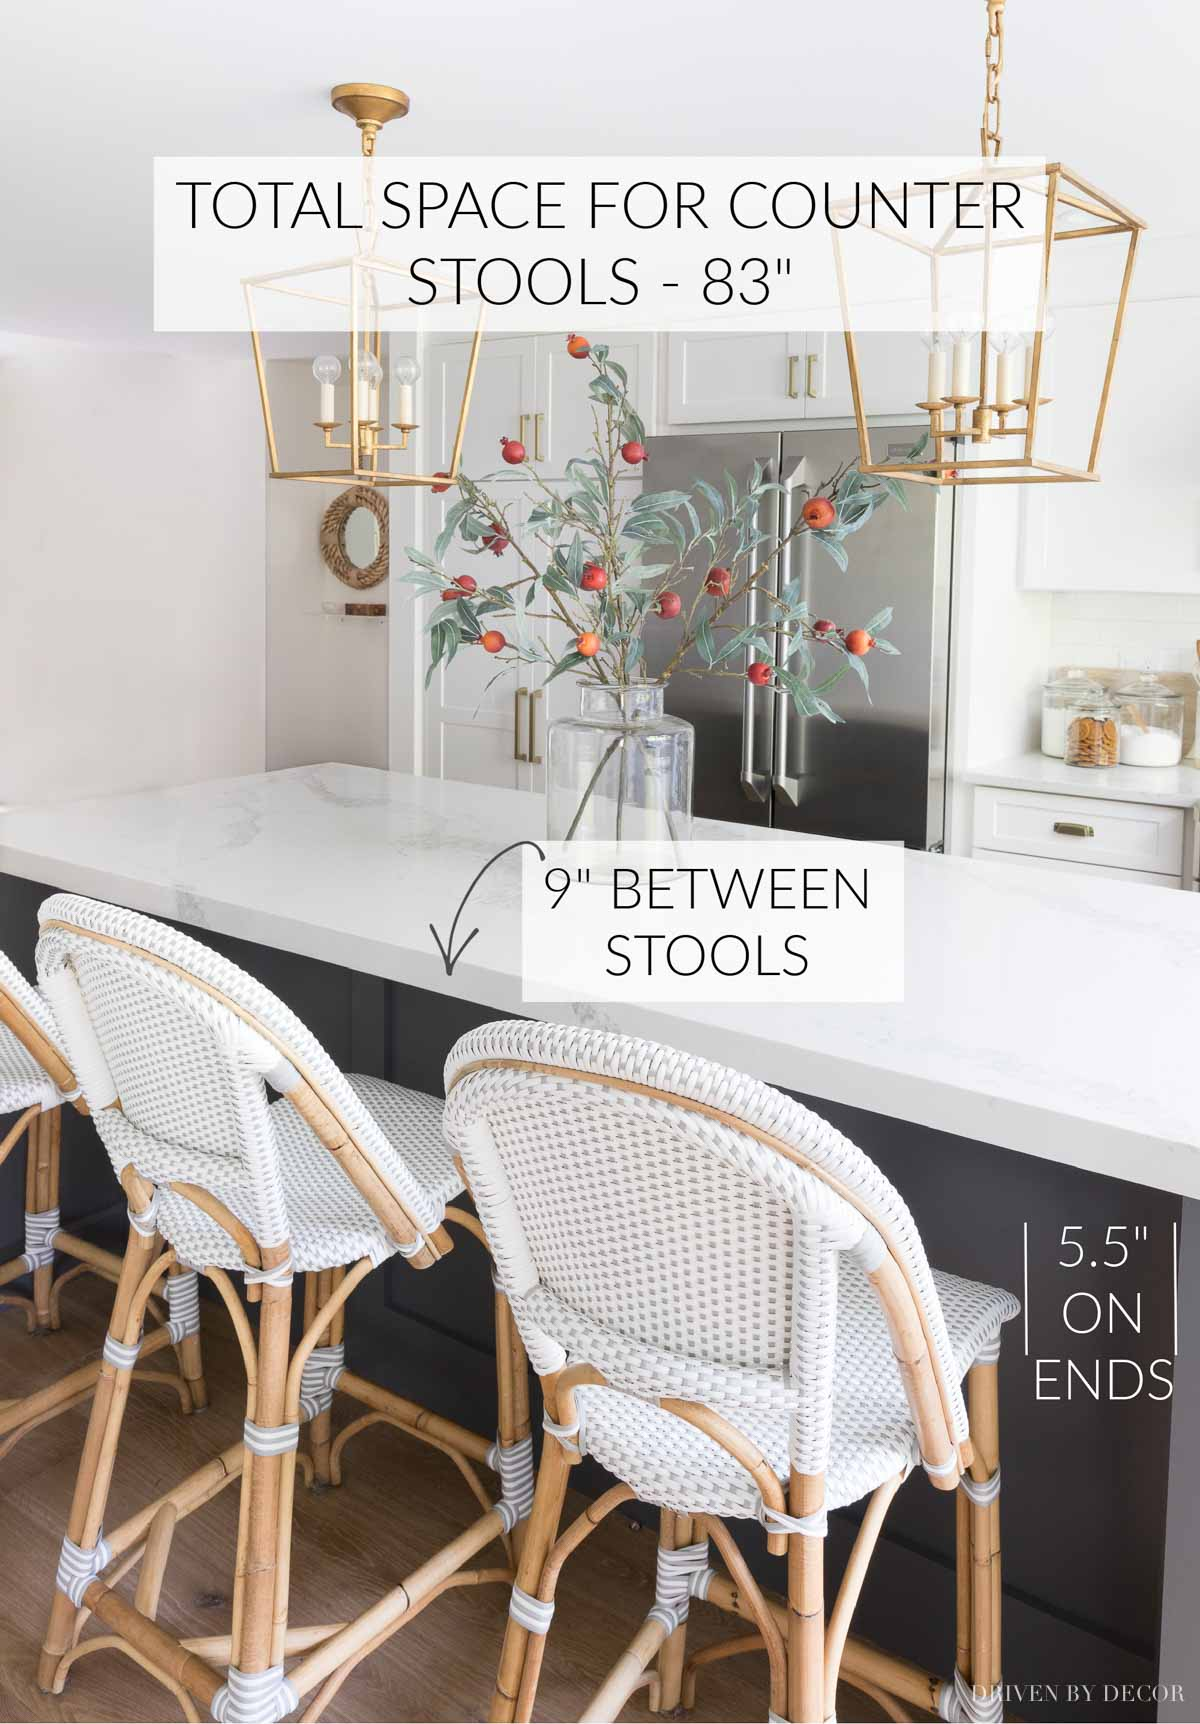 Helpful info on how much space to allow between your counter stools!